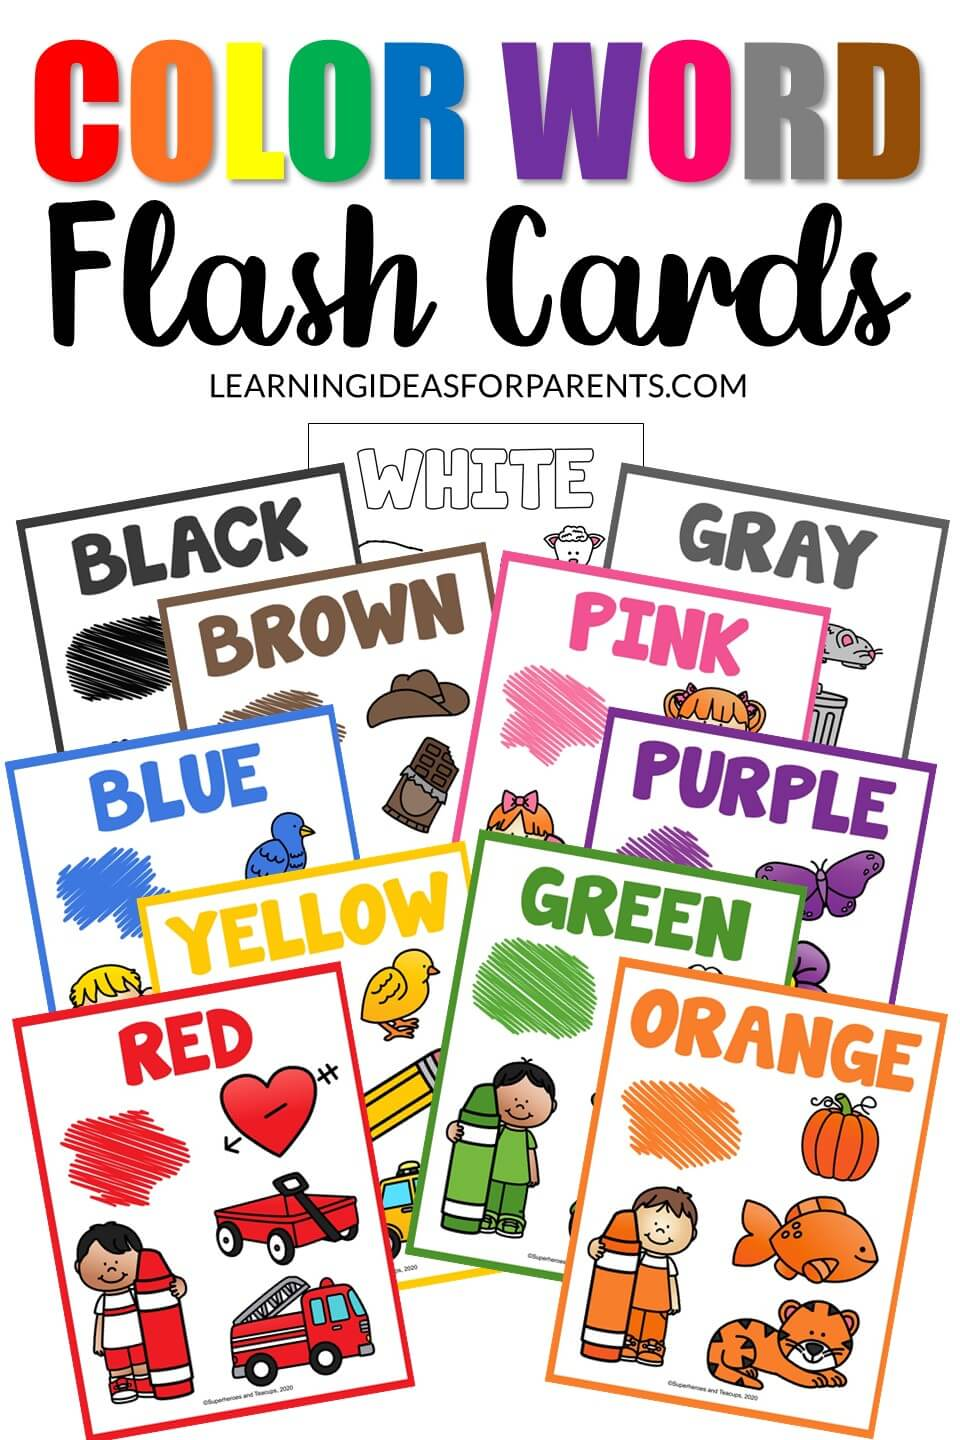 Color Word Flash Cards Free Printable Learning Ideas For Parents